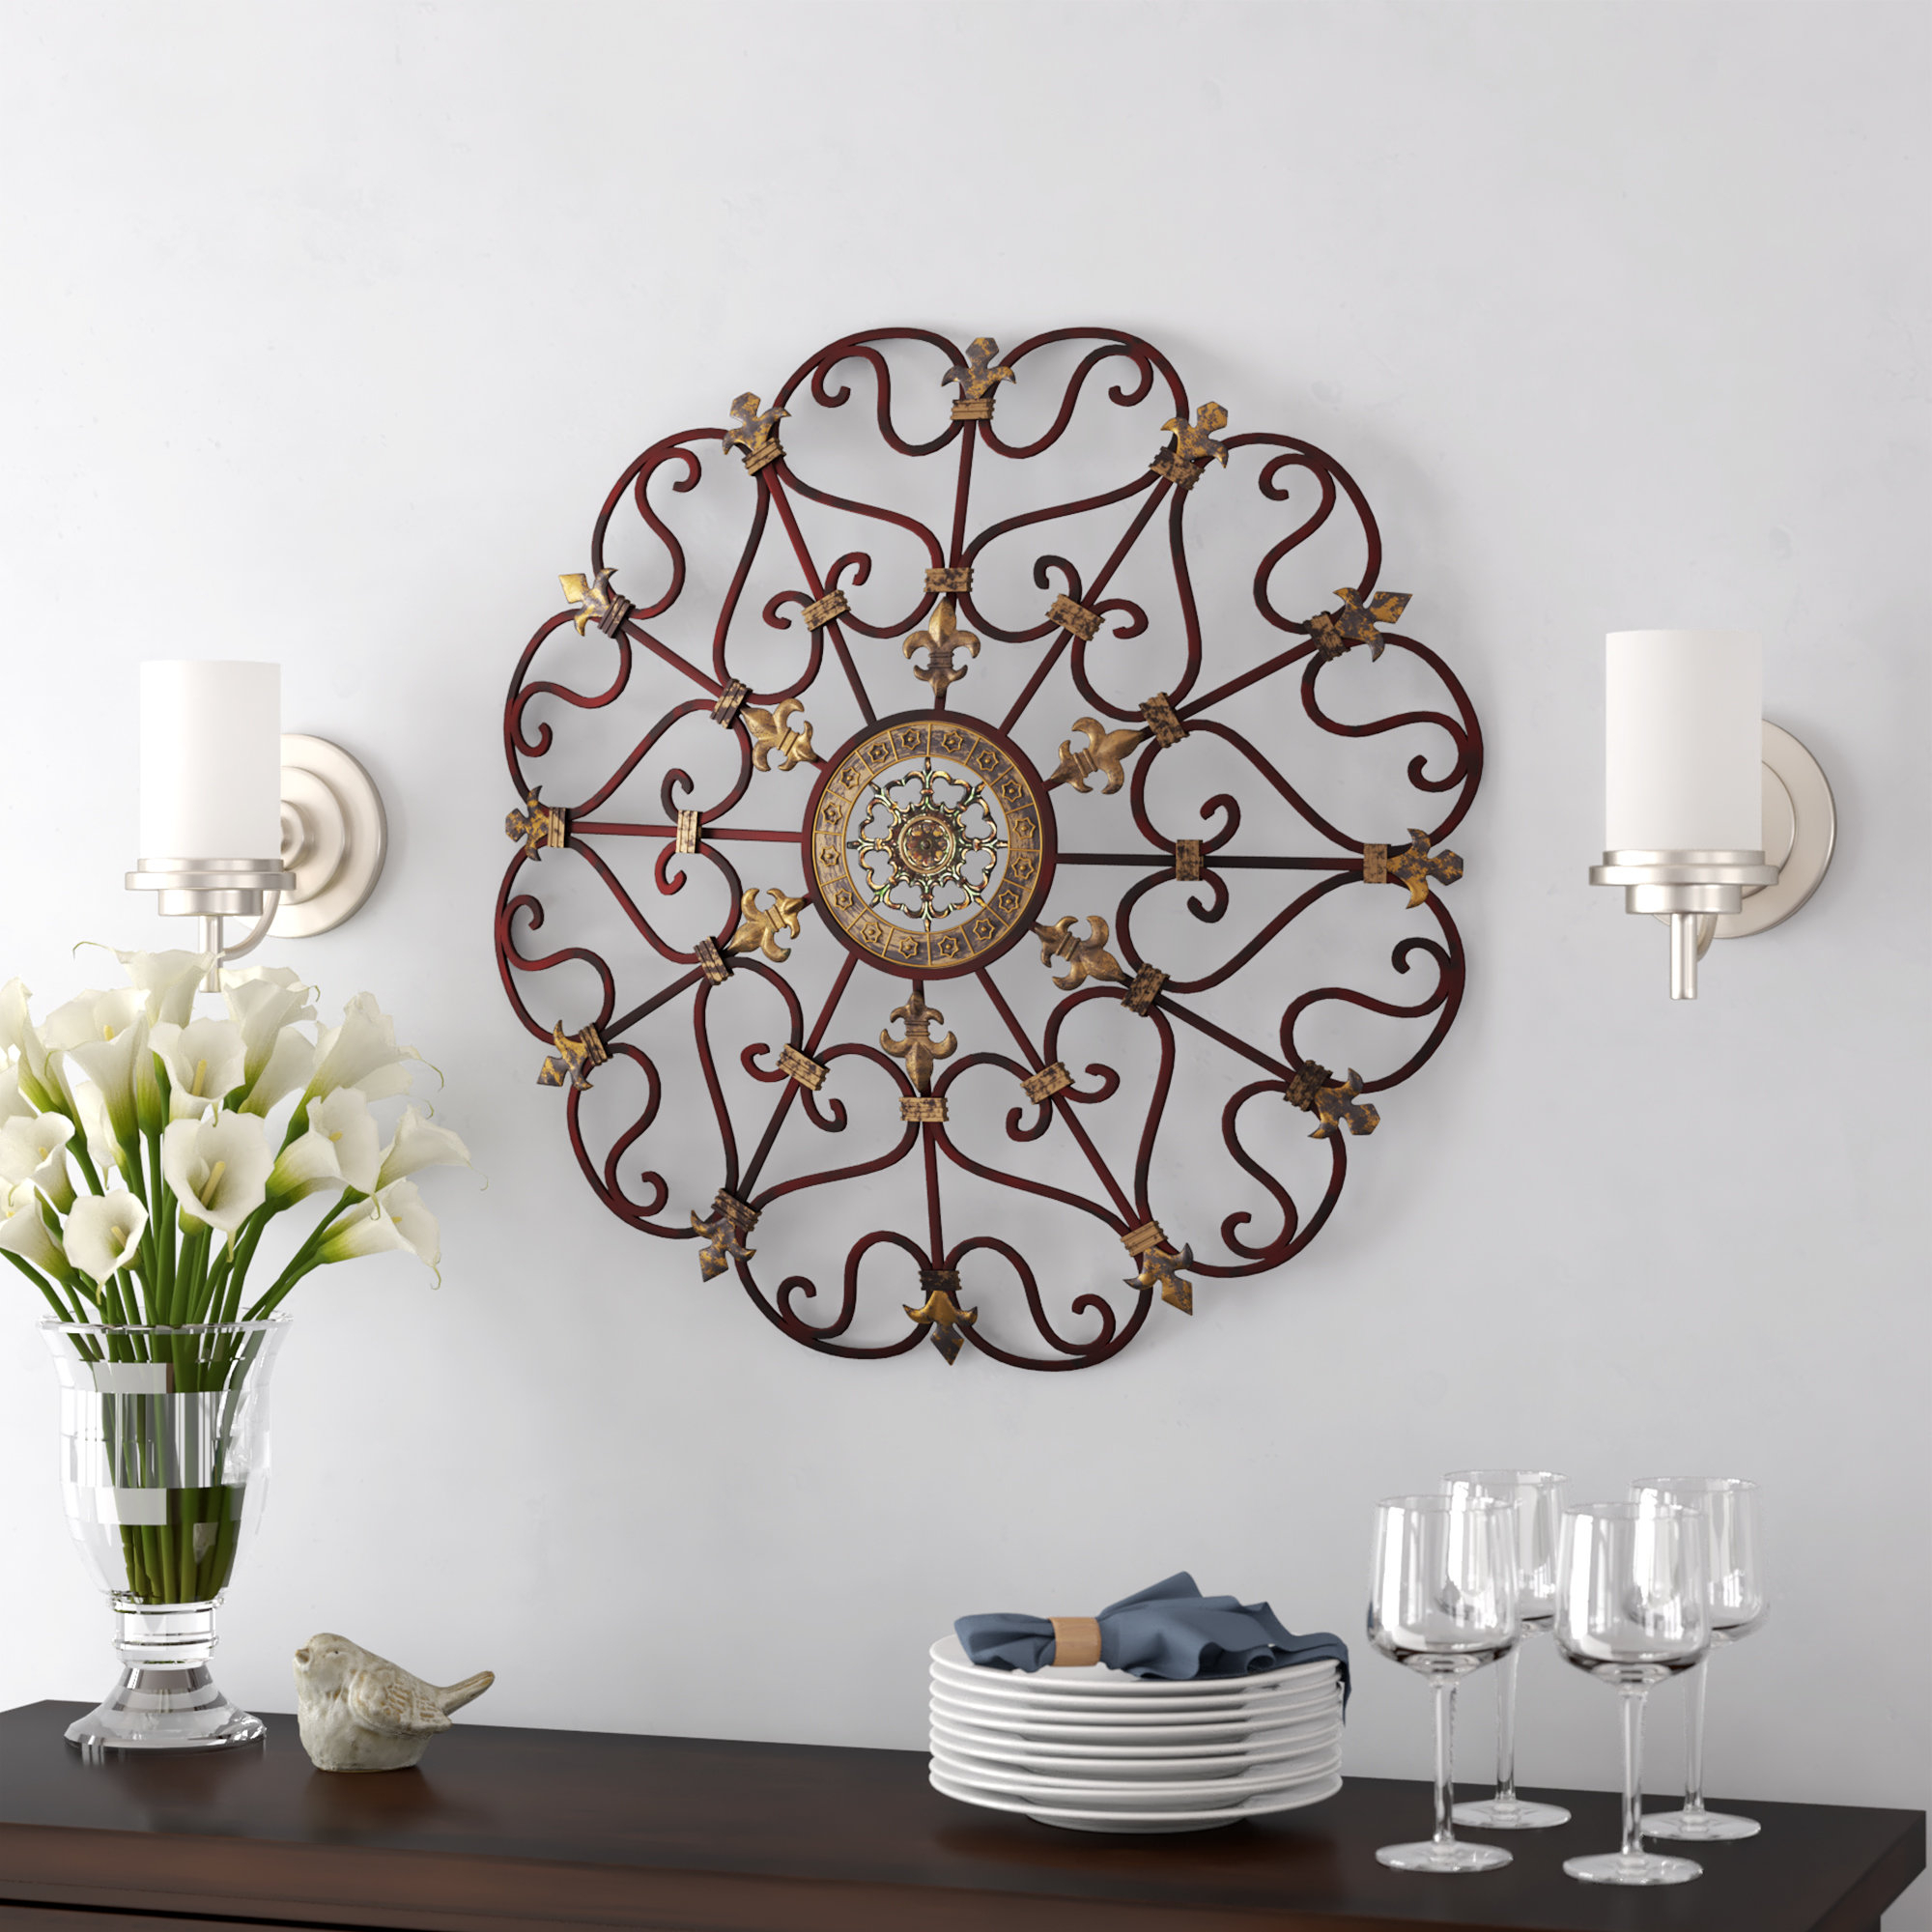 Wall Décor Throughout 1 Piece Ortie Panel Wall Decor (View 30 of 30)